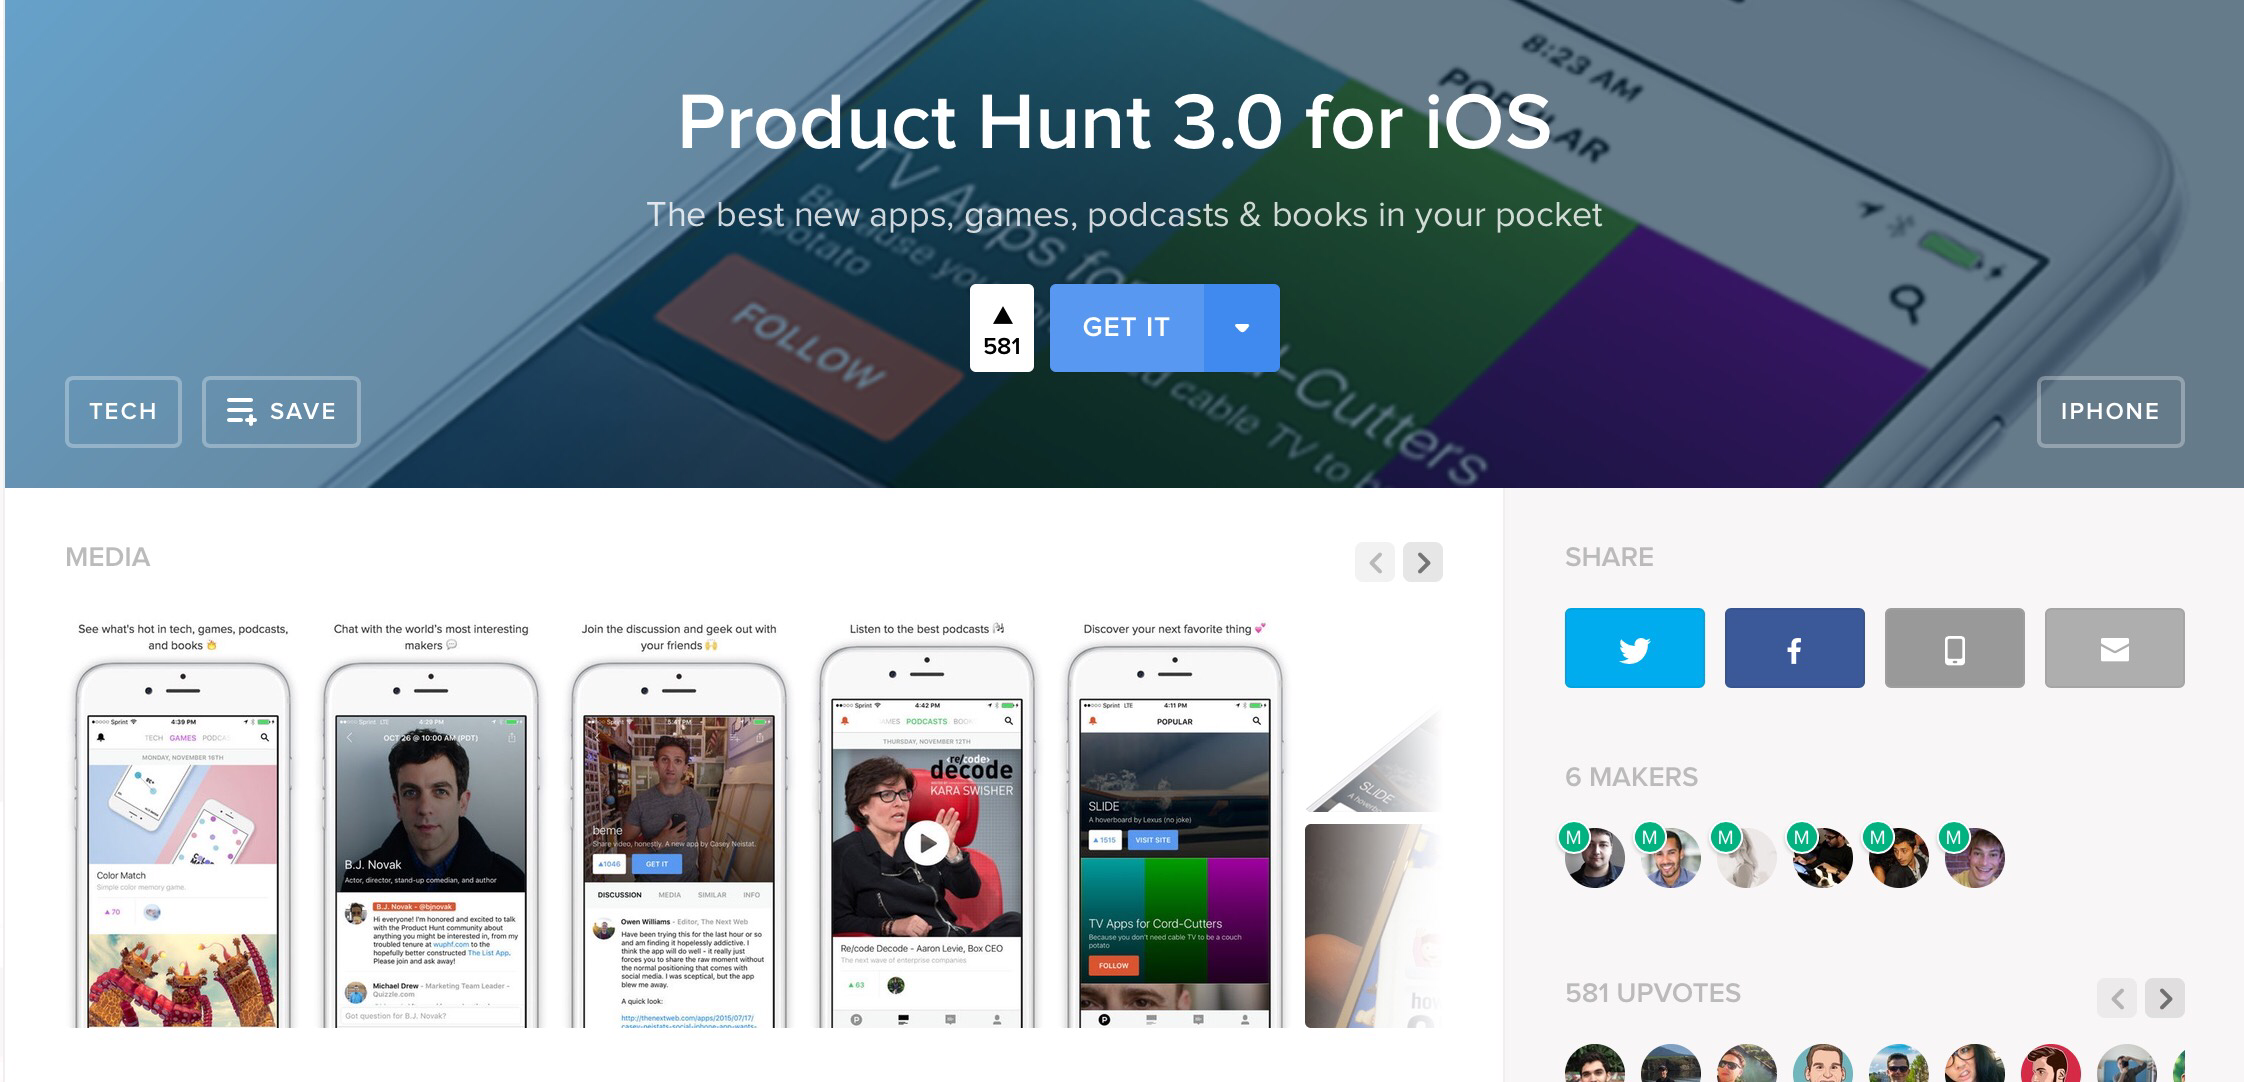 Product Hunt's iOS app gets a mammoth update